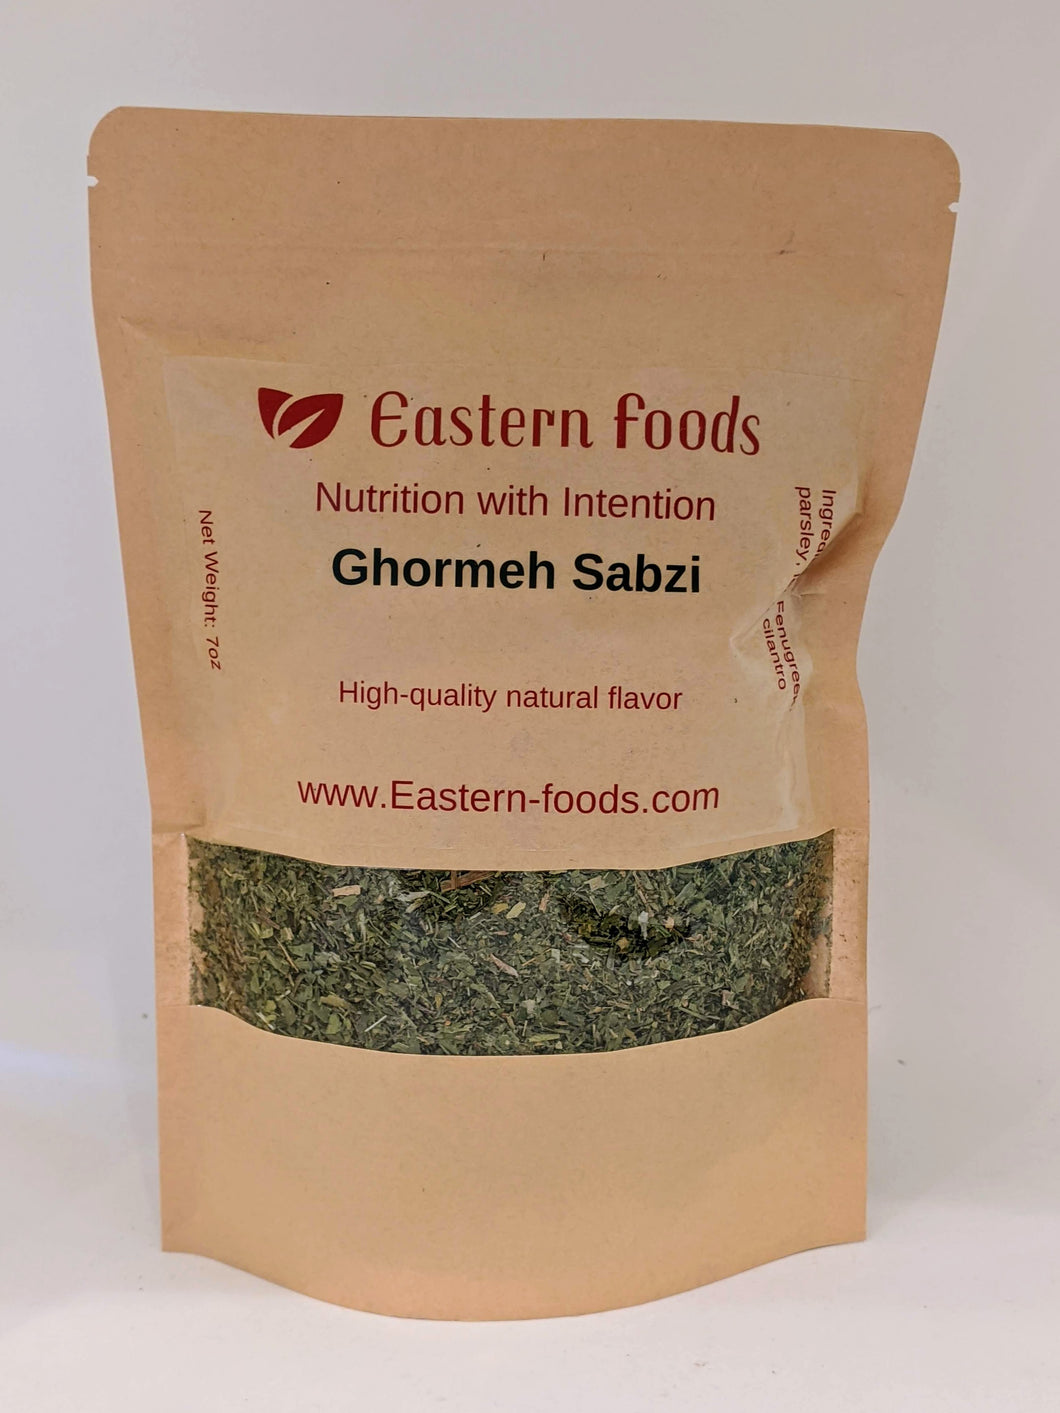 Eastern Foods Ghormeh Sabzi Mixed Herbs, 5 oz -Ingredients: Parsley, Leek and Fenugreek